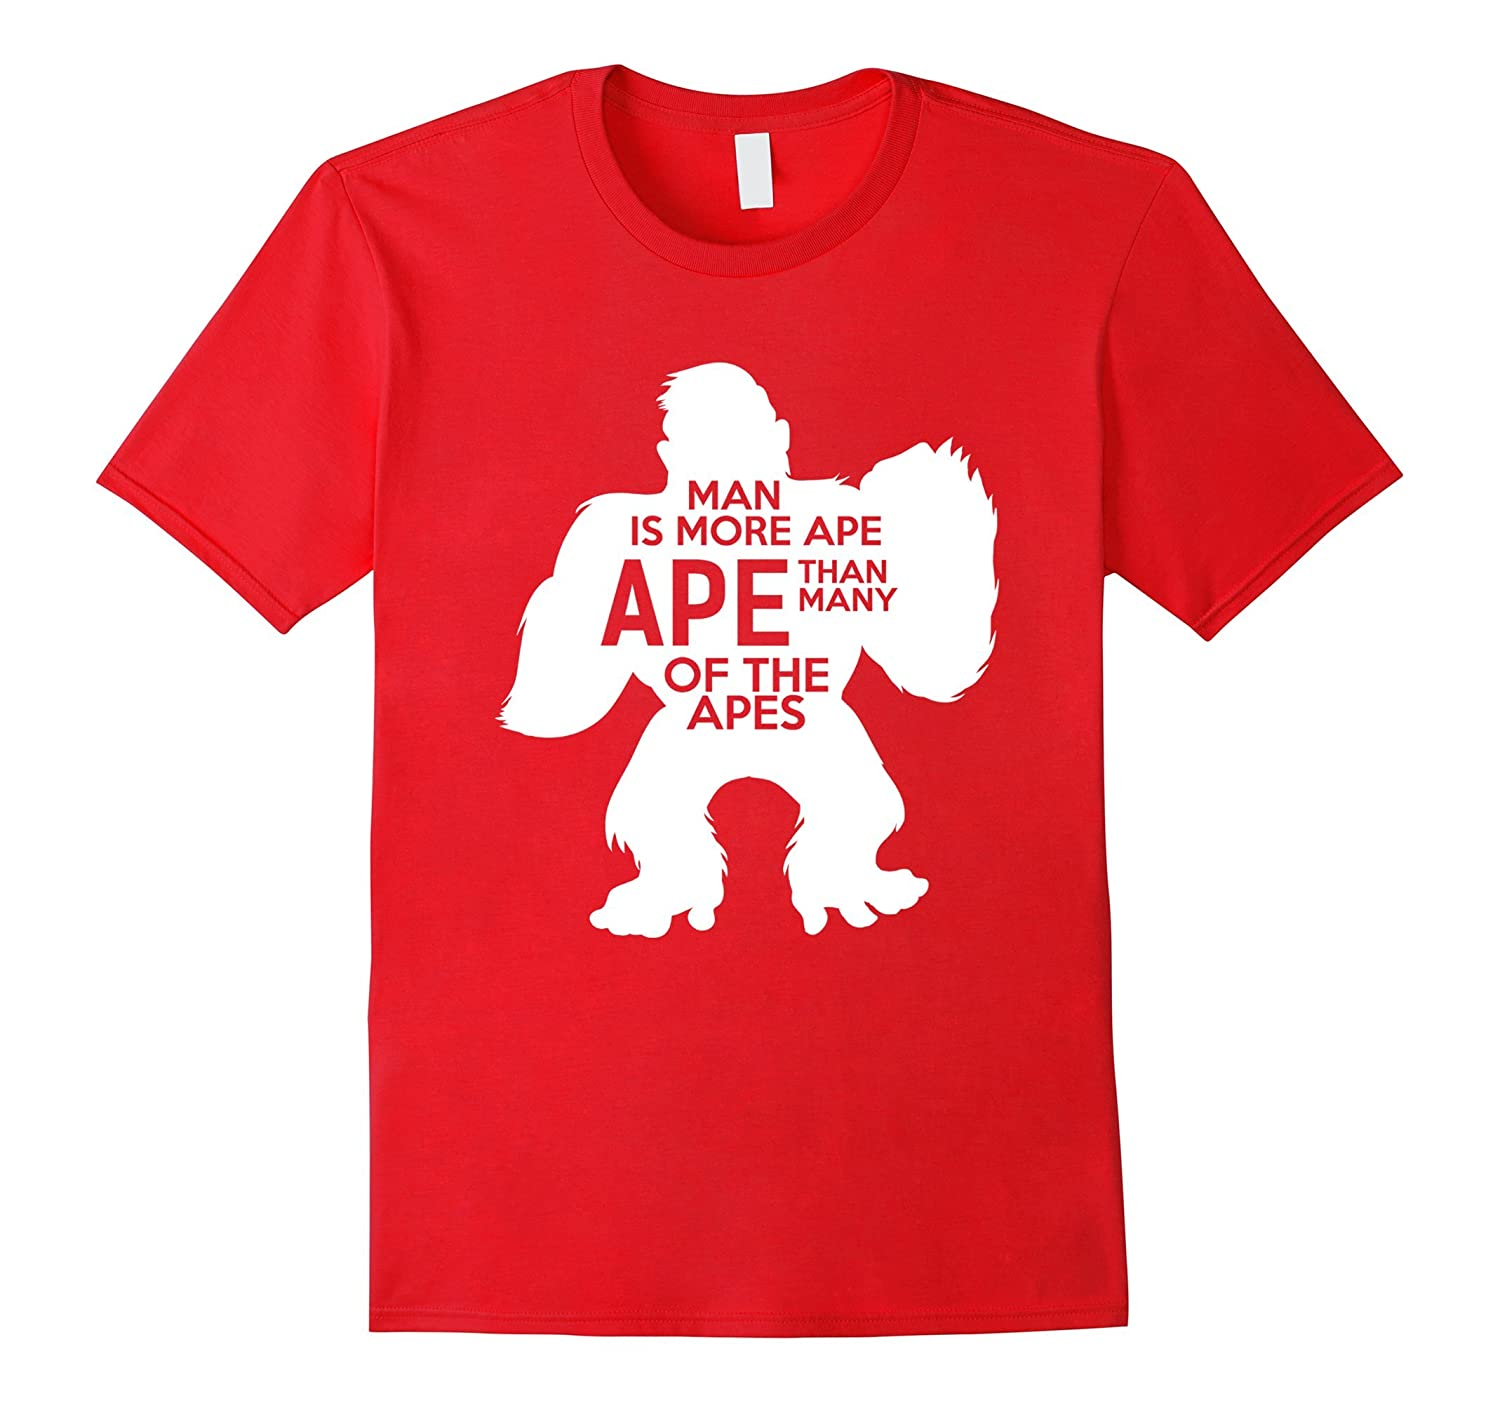 Apes T-shirt - Man is more ape ape than many of the apes-Vaci